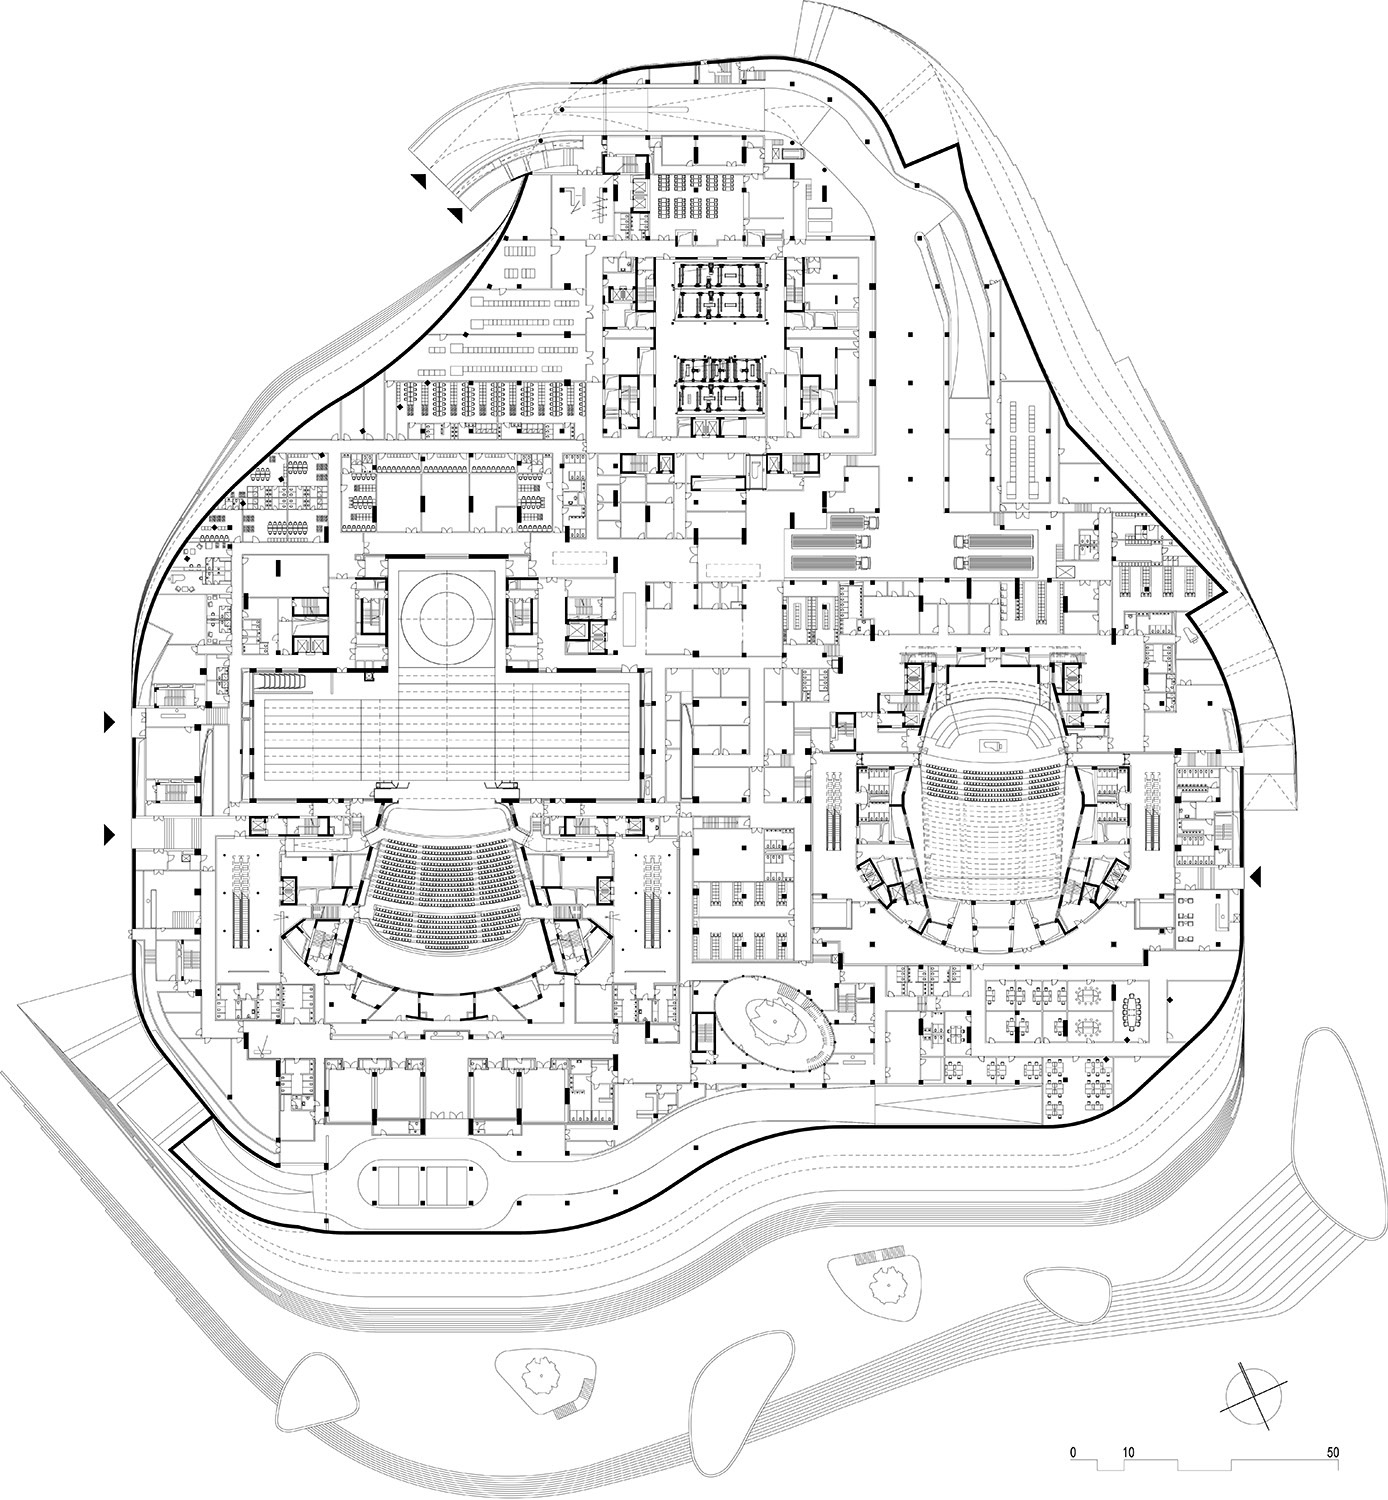 Floor plan level 01 © gmp Architects}